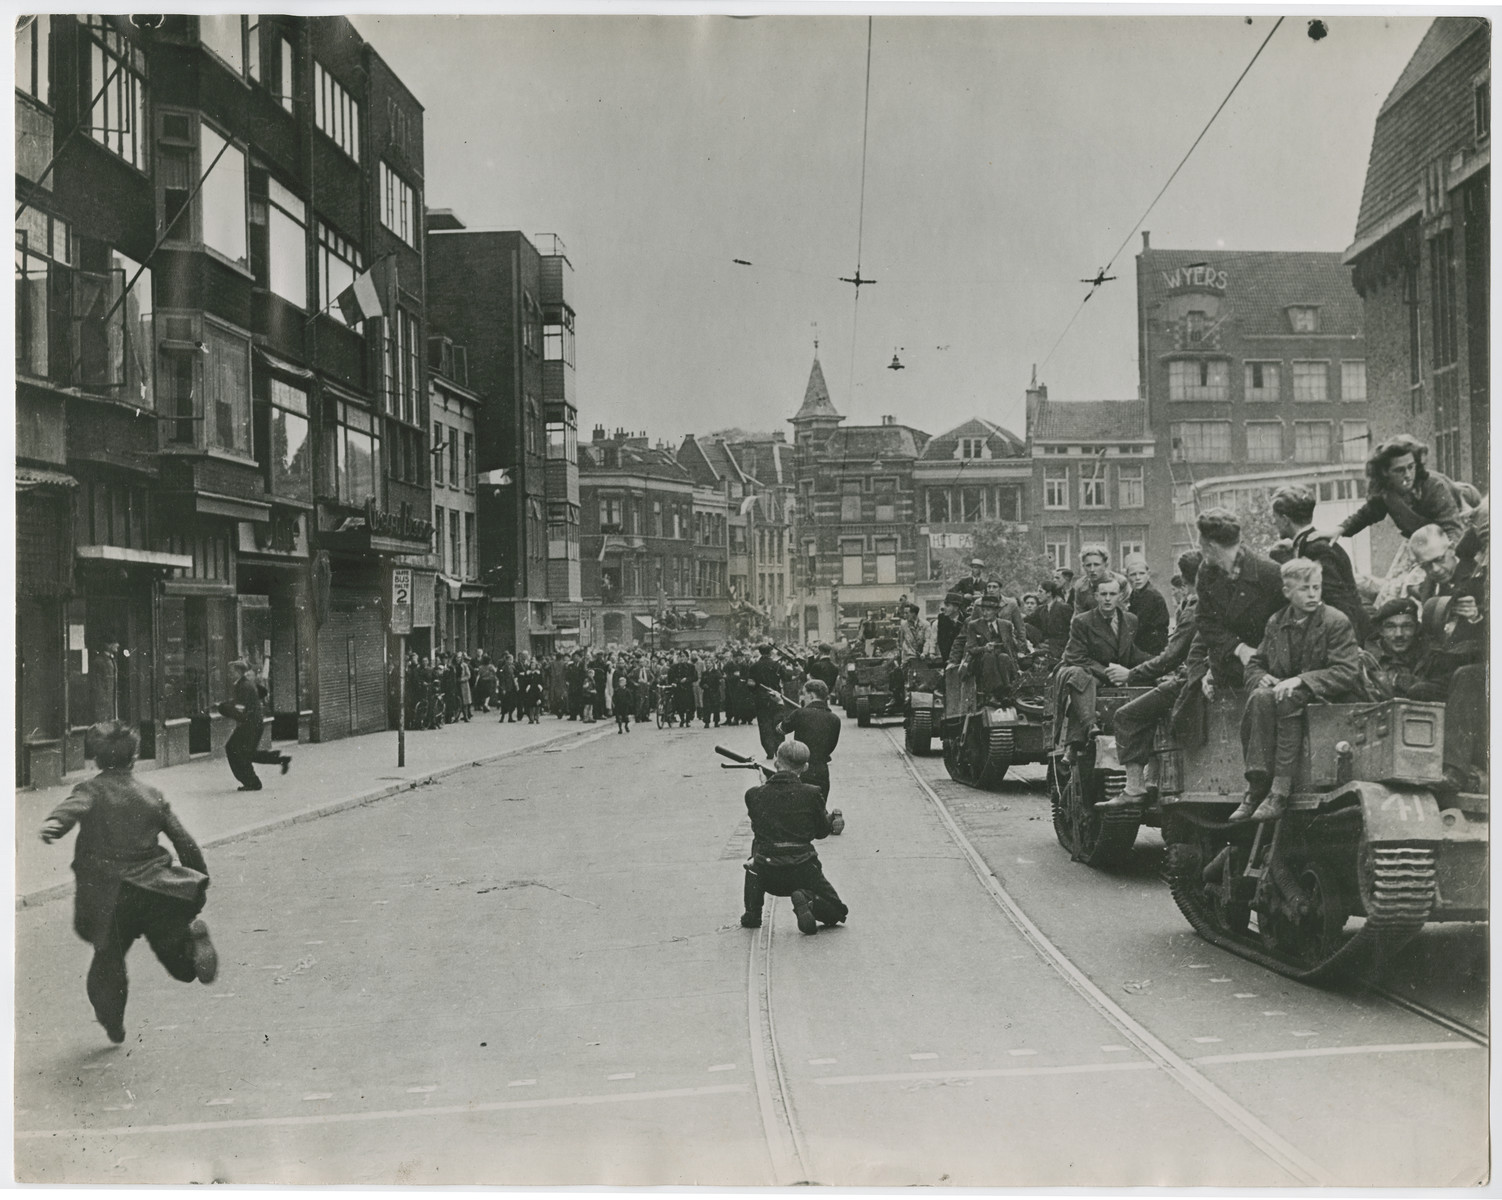 """Sharpshooters aim at German snipers who fired at a Dutch victory parade in Utrecht.    Original caption reads:  """"Crowds celebrating victory in the streets of Utrecht, Holland, are fired on by Nazi fanatics hiding in a building overlooking the parade.  After a sharp skirmish, the Germans were captured by Dutch patriots and the celebration was resumed.  Here, as the Nazis open fire on the victory crowds, Dutch patriots go into action""""."""